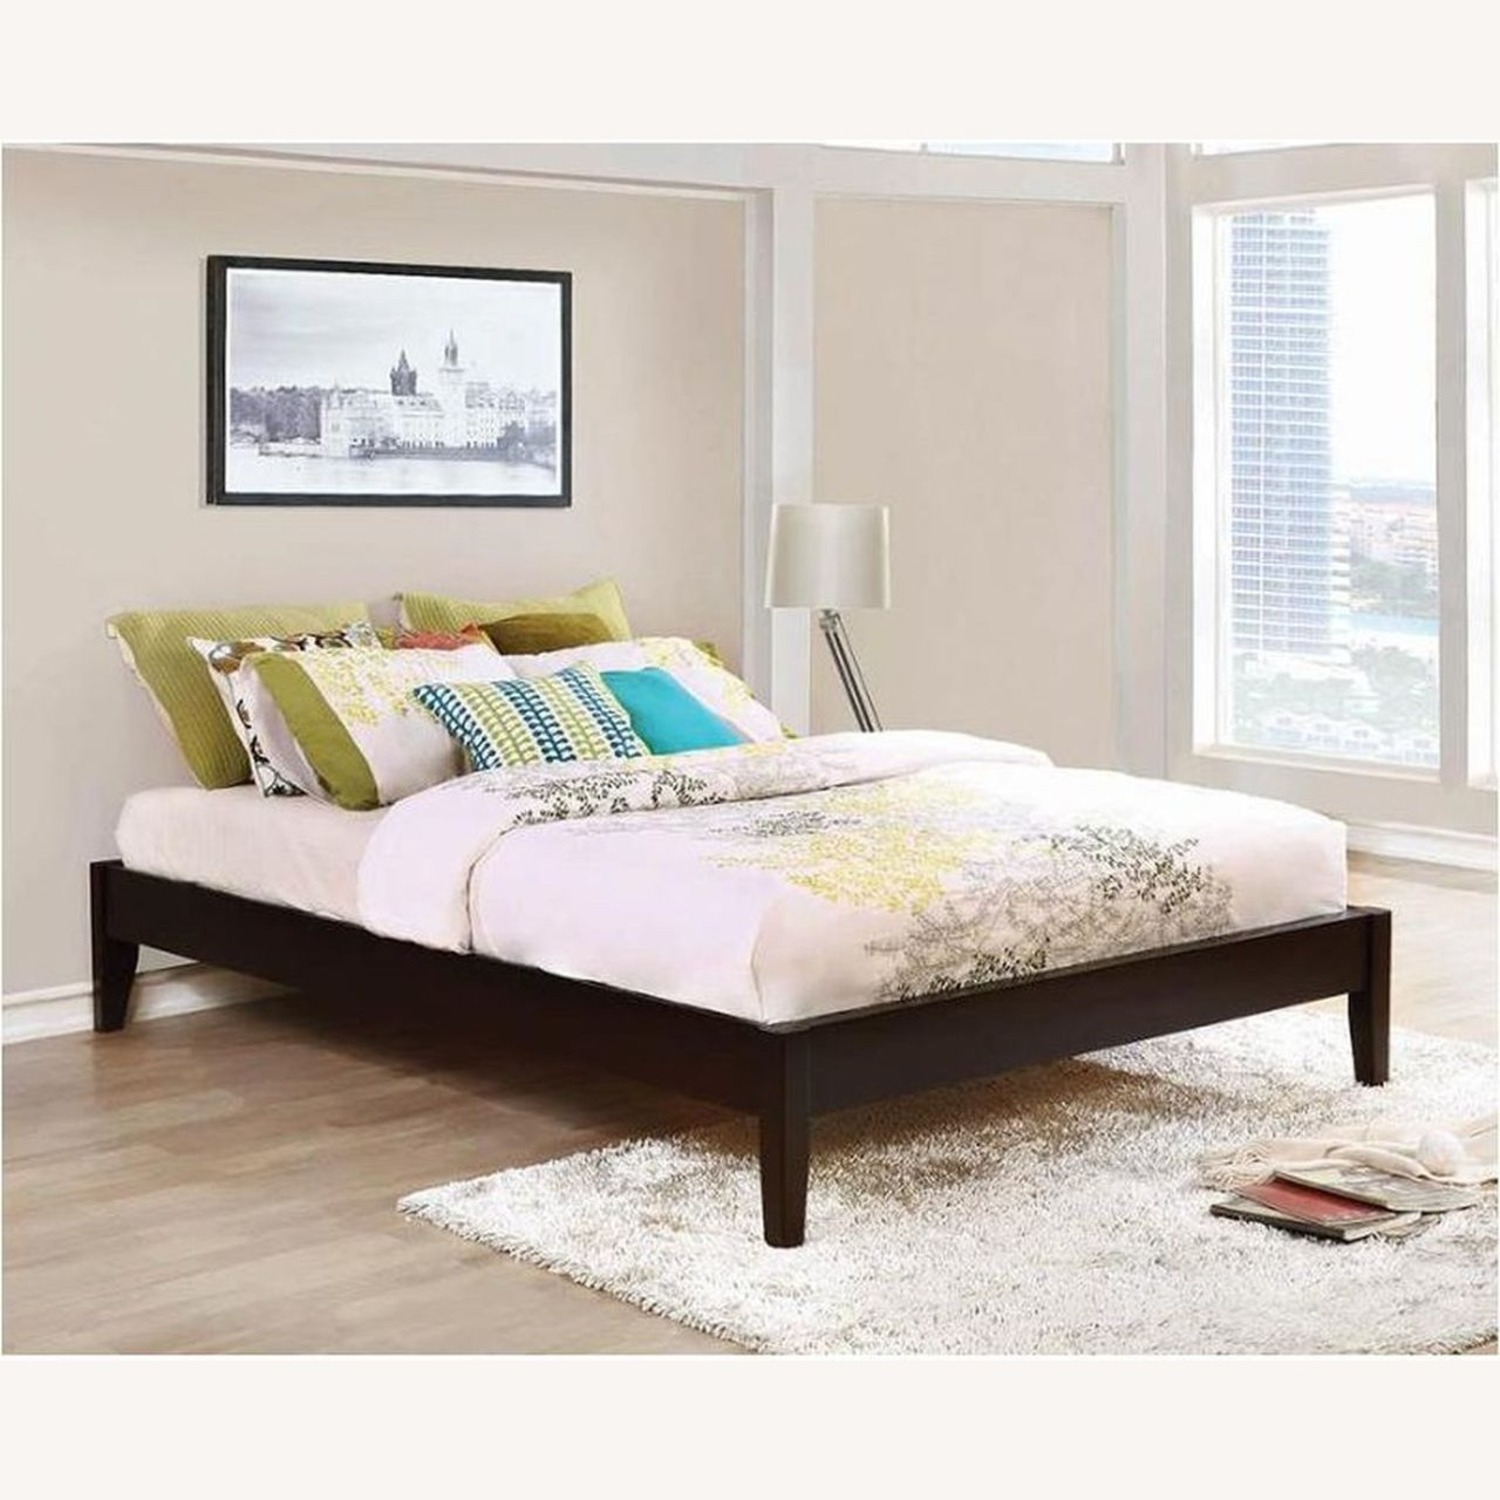 Universal Platform Queen Bed In Cappuccino Finish - image-2